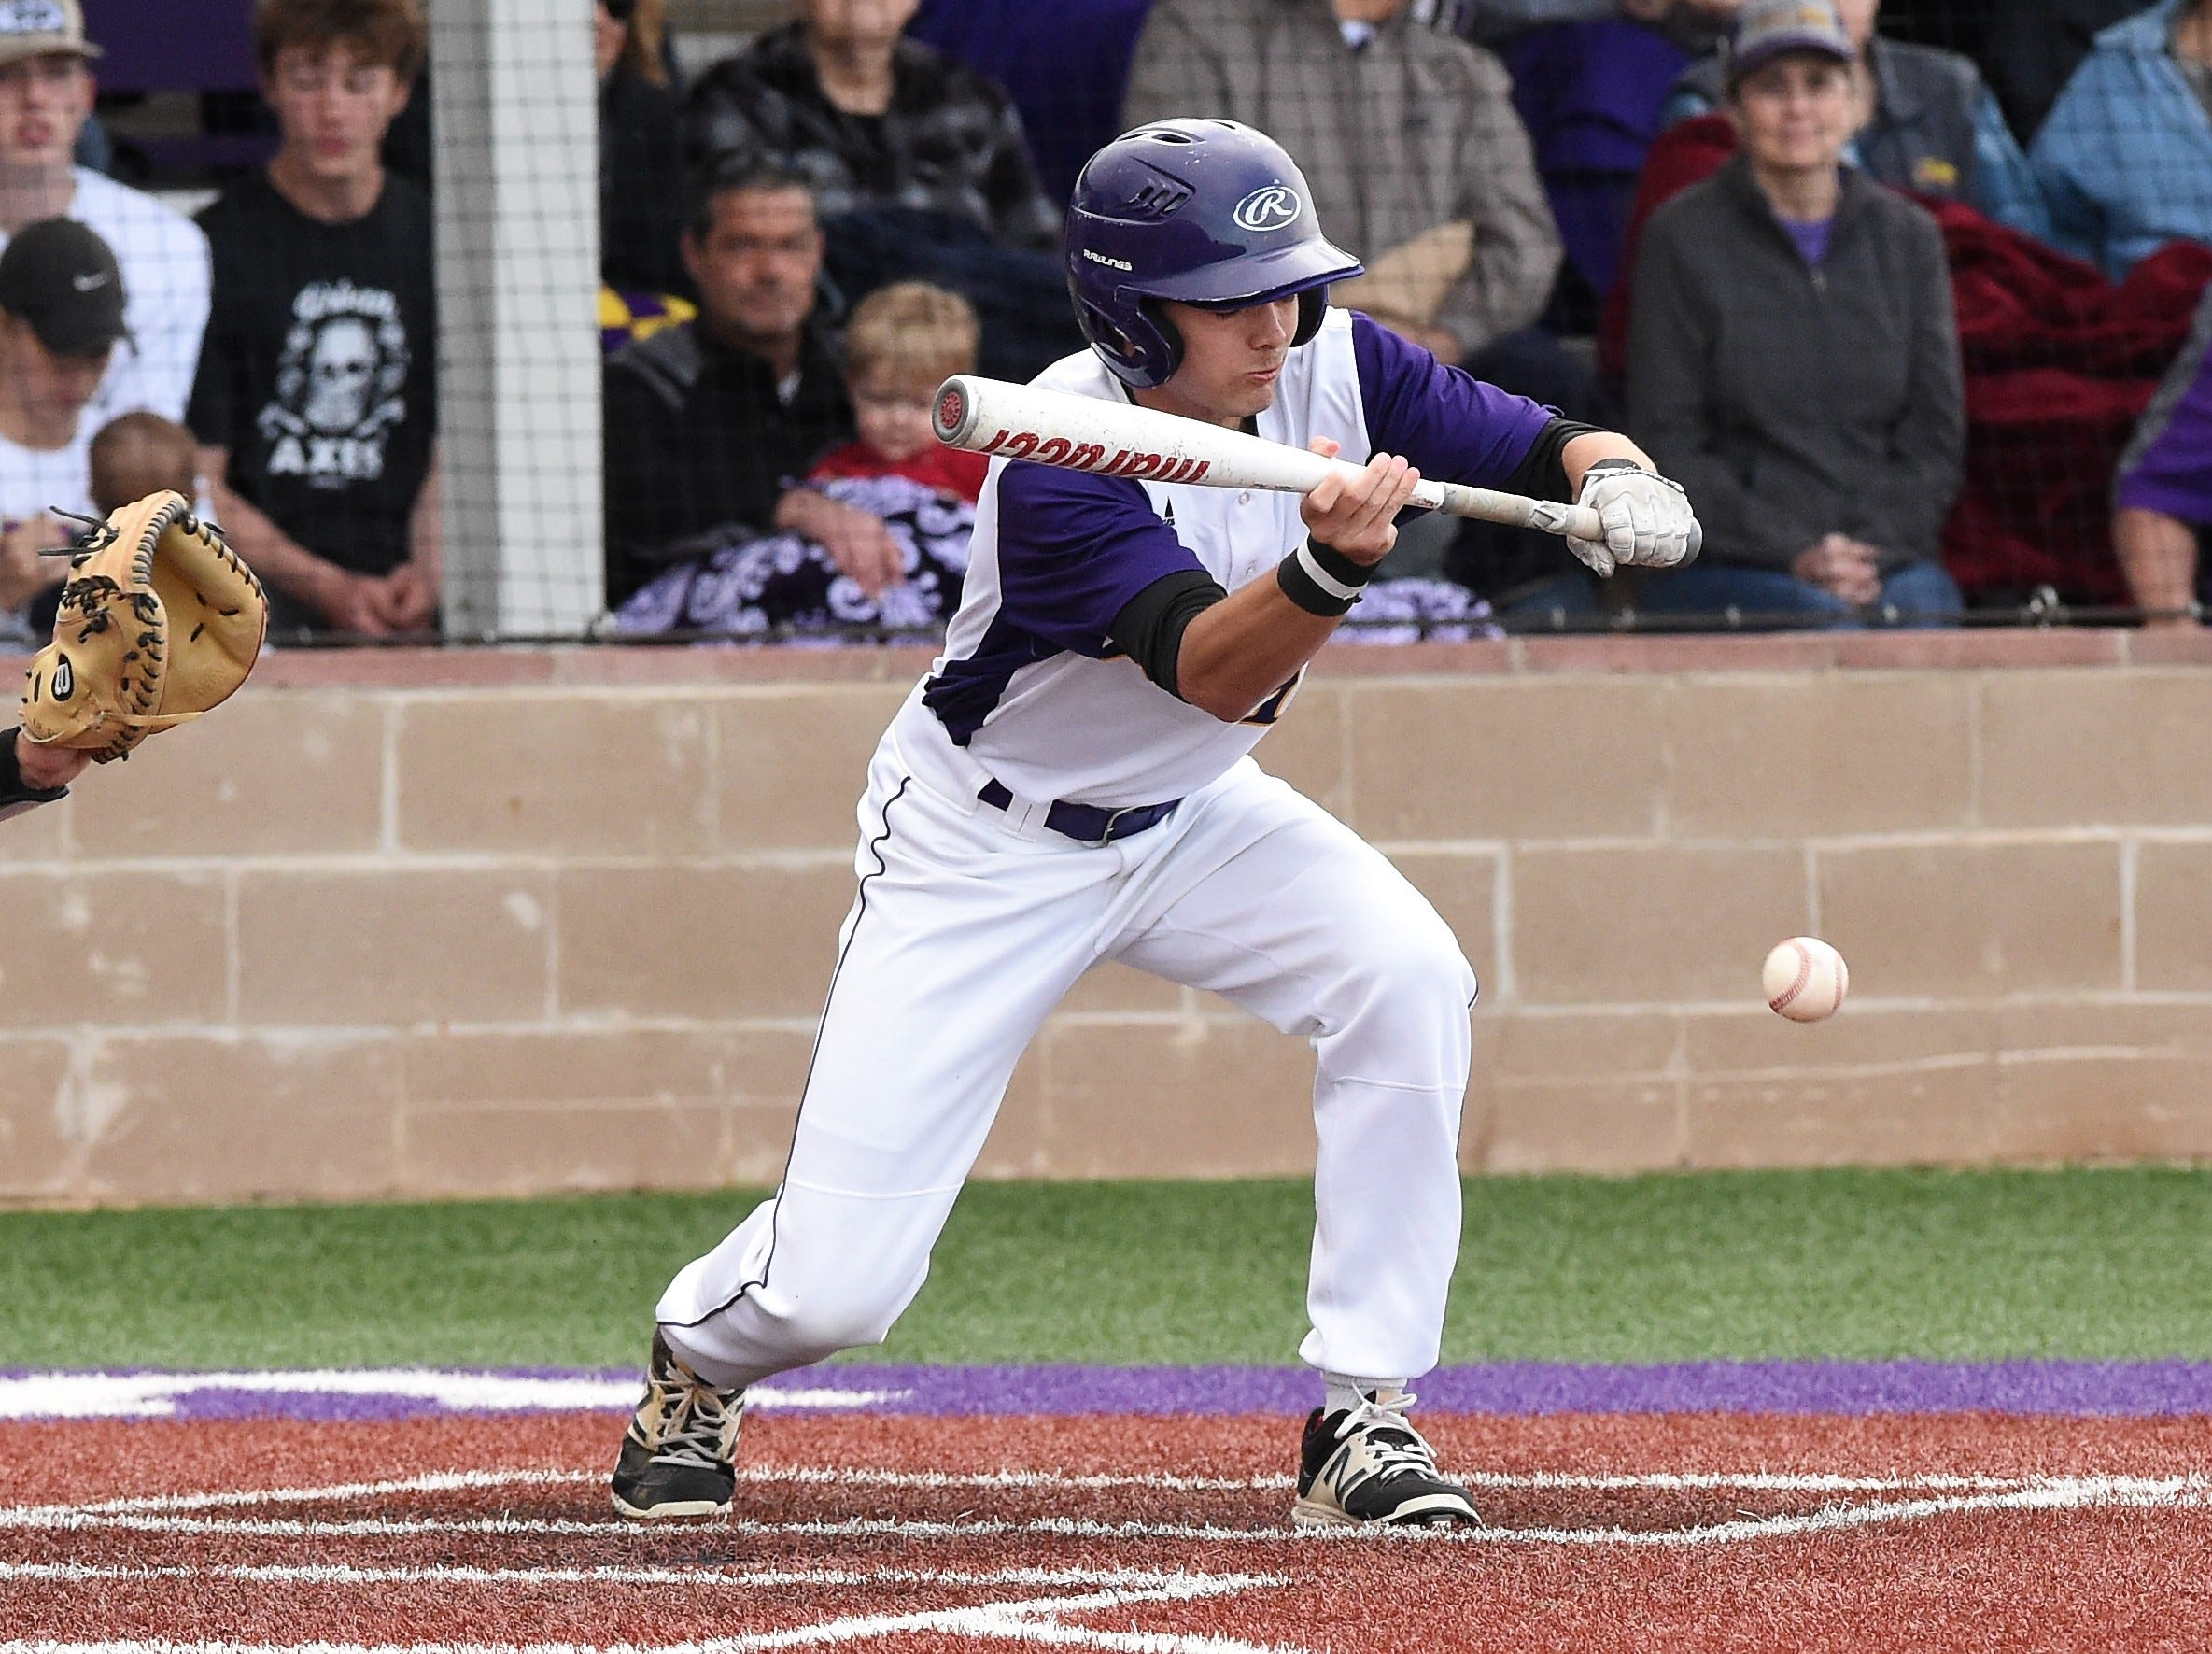 Wylie's Brandon Sanders (19) puts down a successful bunt against Cooper at Bulldog Field on Friday, April 12, 2019. The Bulldogs held on for a 4-3 win.